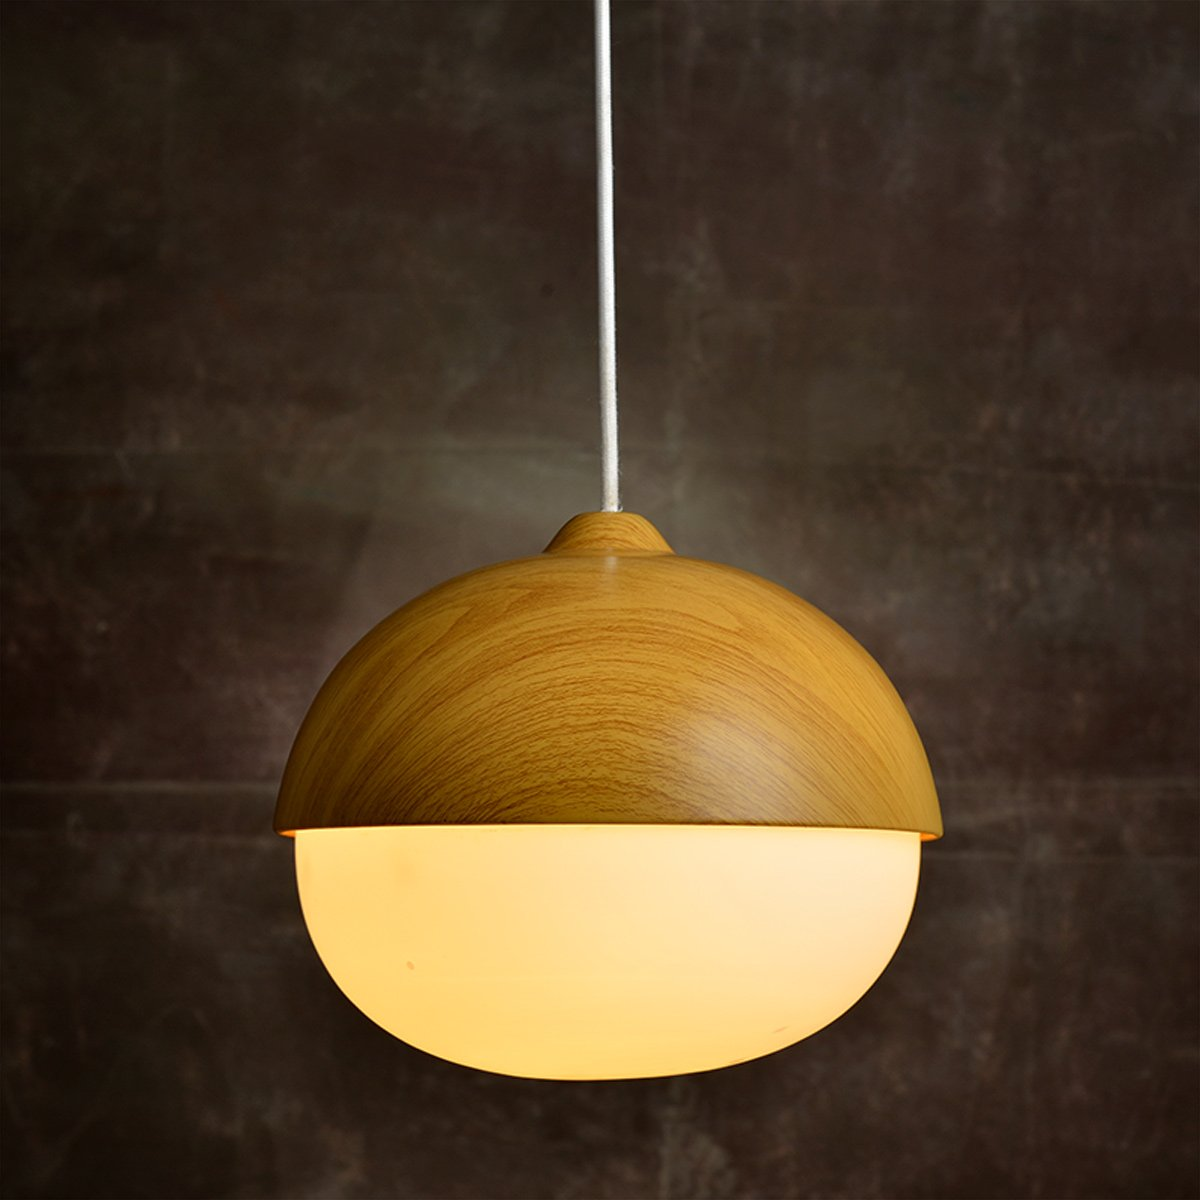 MASO Home, The Modern Elegance Style of Pendant Hanging Lamps, Natural Wood Color Based with Glass Shade Pendant Ceiling Light, Retro Industrial Lamp Vintage Unique Design (Chestnut Shape)